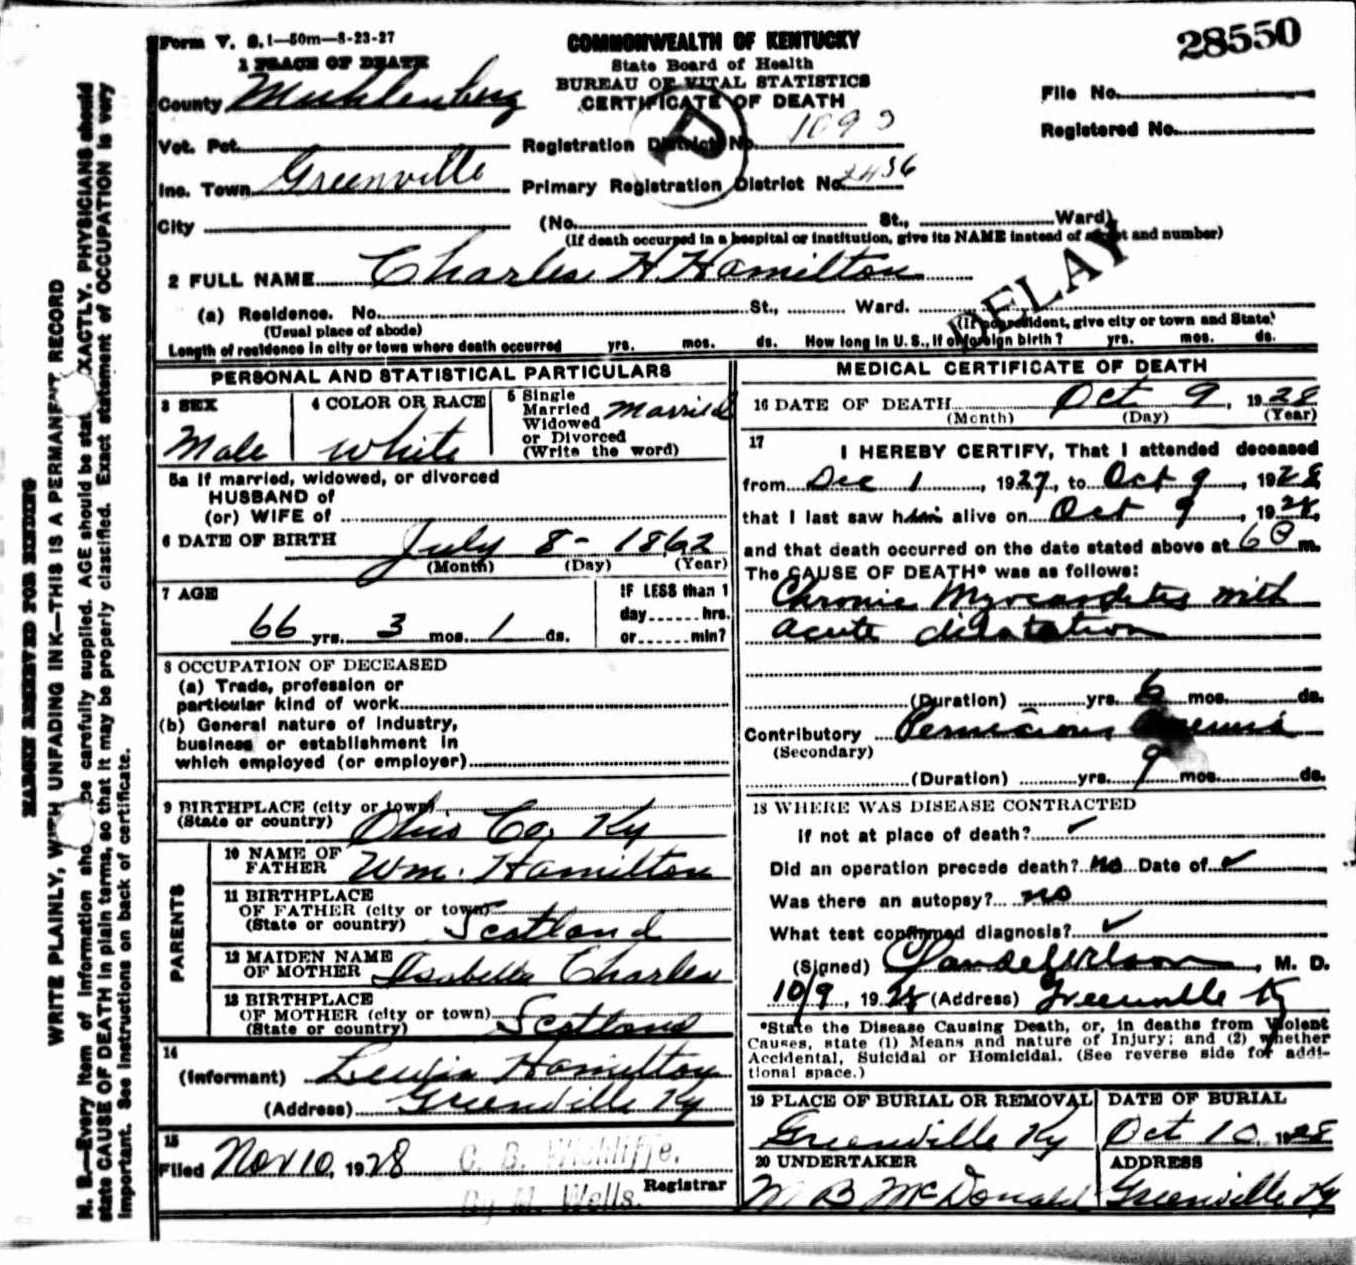 Death certificates h kentucky death certificate 28550 charles h hamilton aiddatafo Images